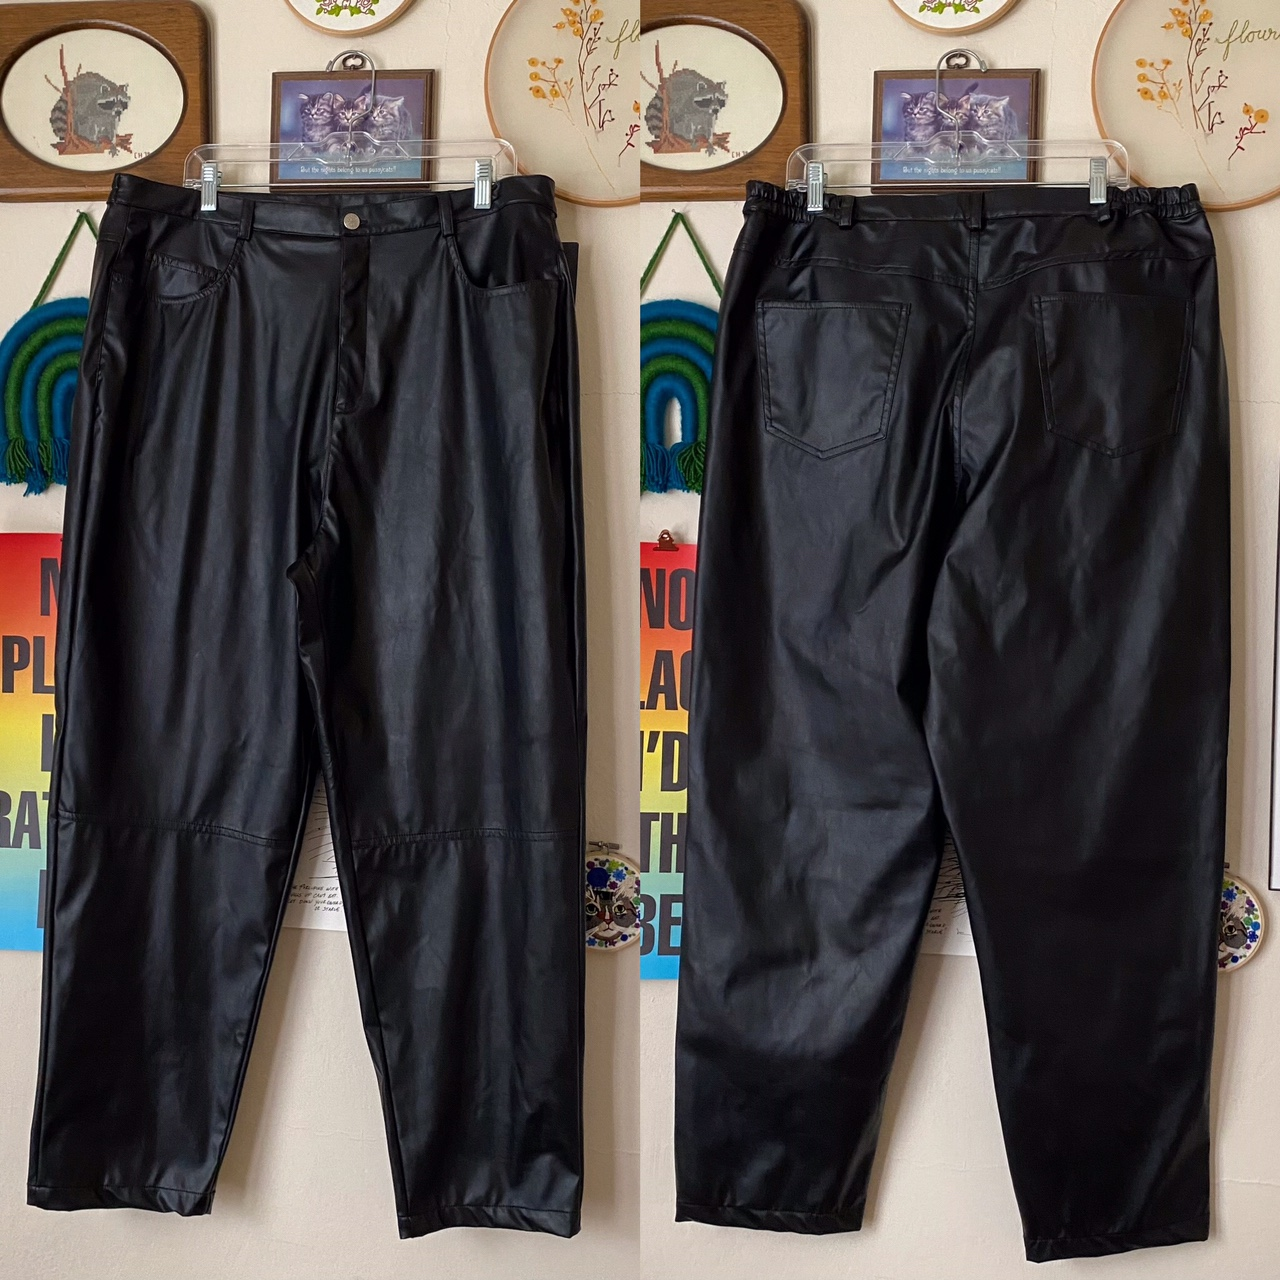 Product Image 1 - Vintage 90s faux leather highwaisted